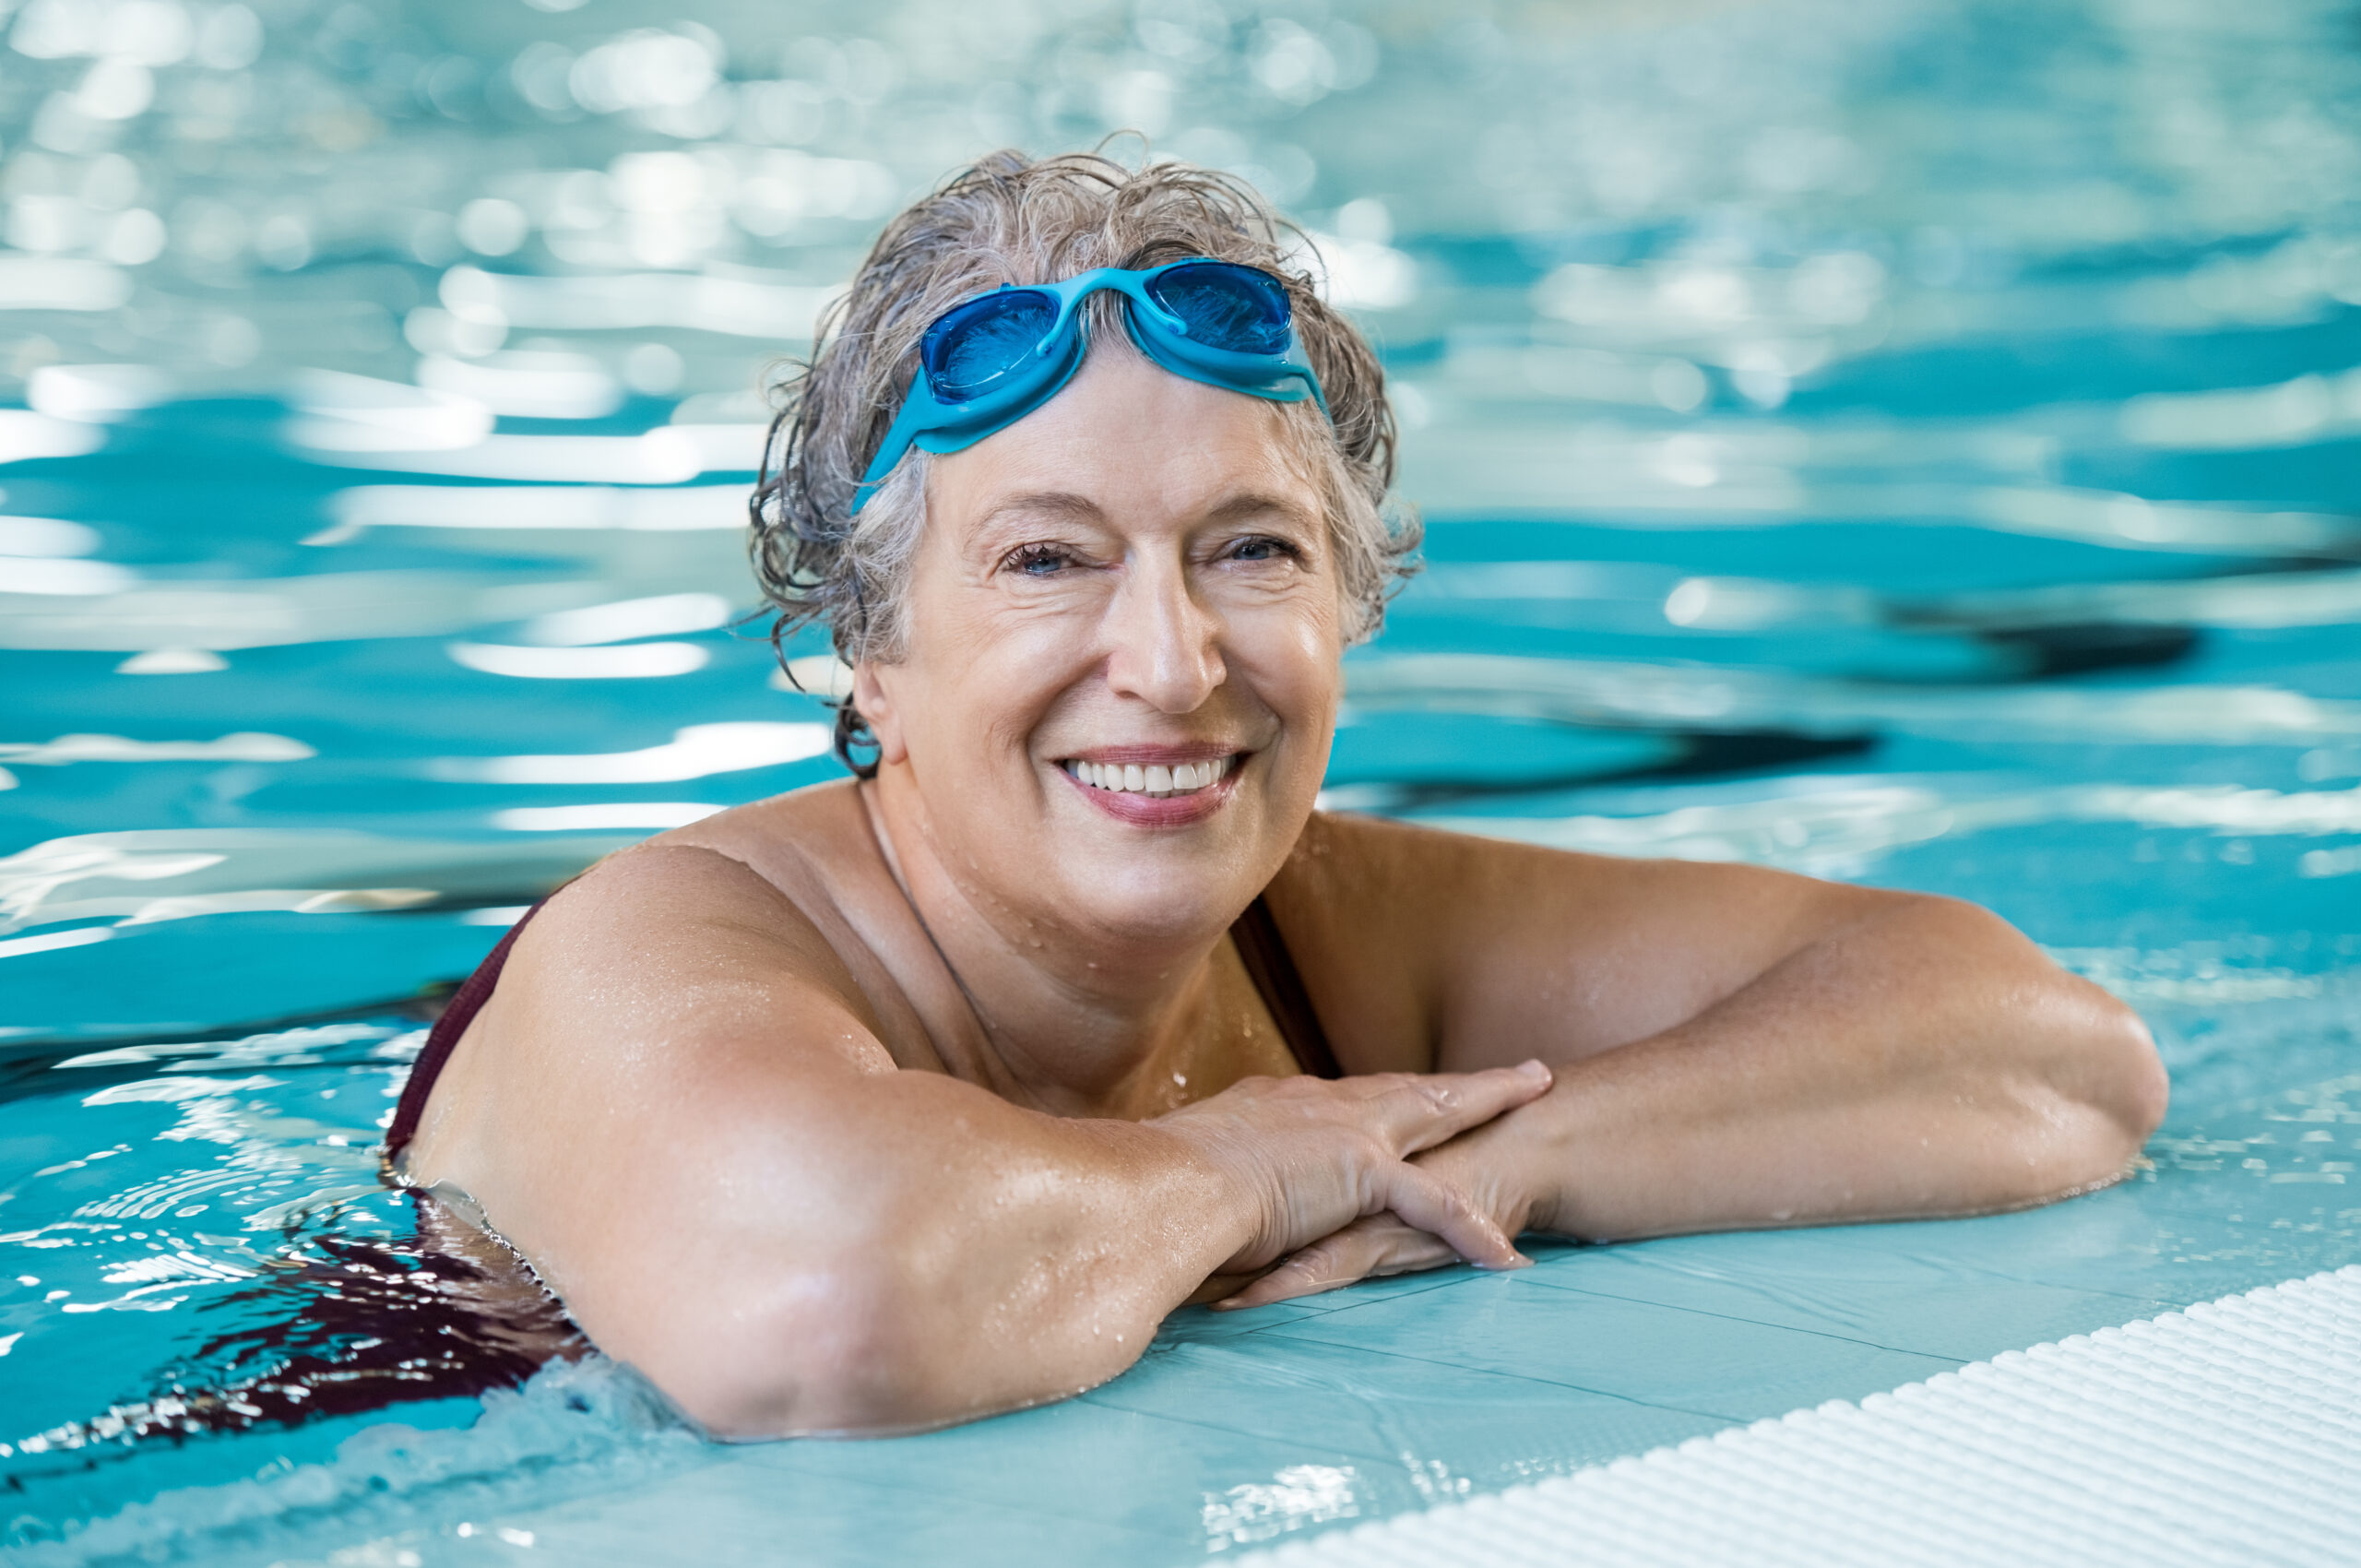 Mature woman wearing swim goggles resting on edge of swimming pool smiling at camera.